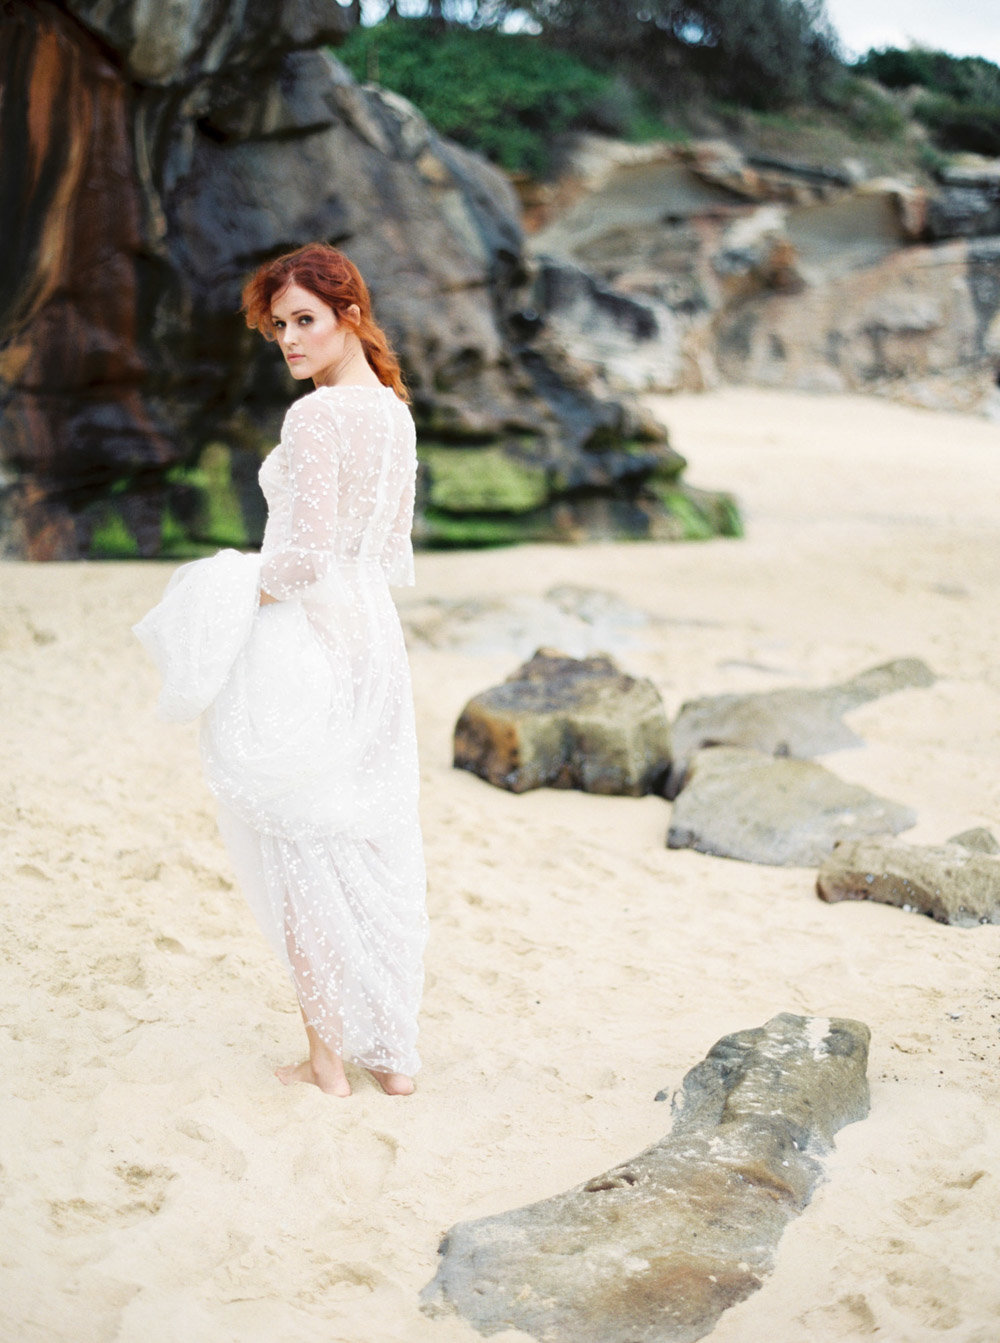 Sydney Fine Art Film Wedding Photographer Sheri McMahon - Sydney NSW Australia Beach Wedding Inspiration-00039